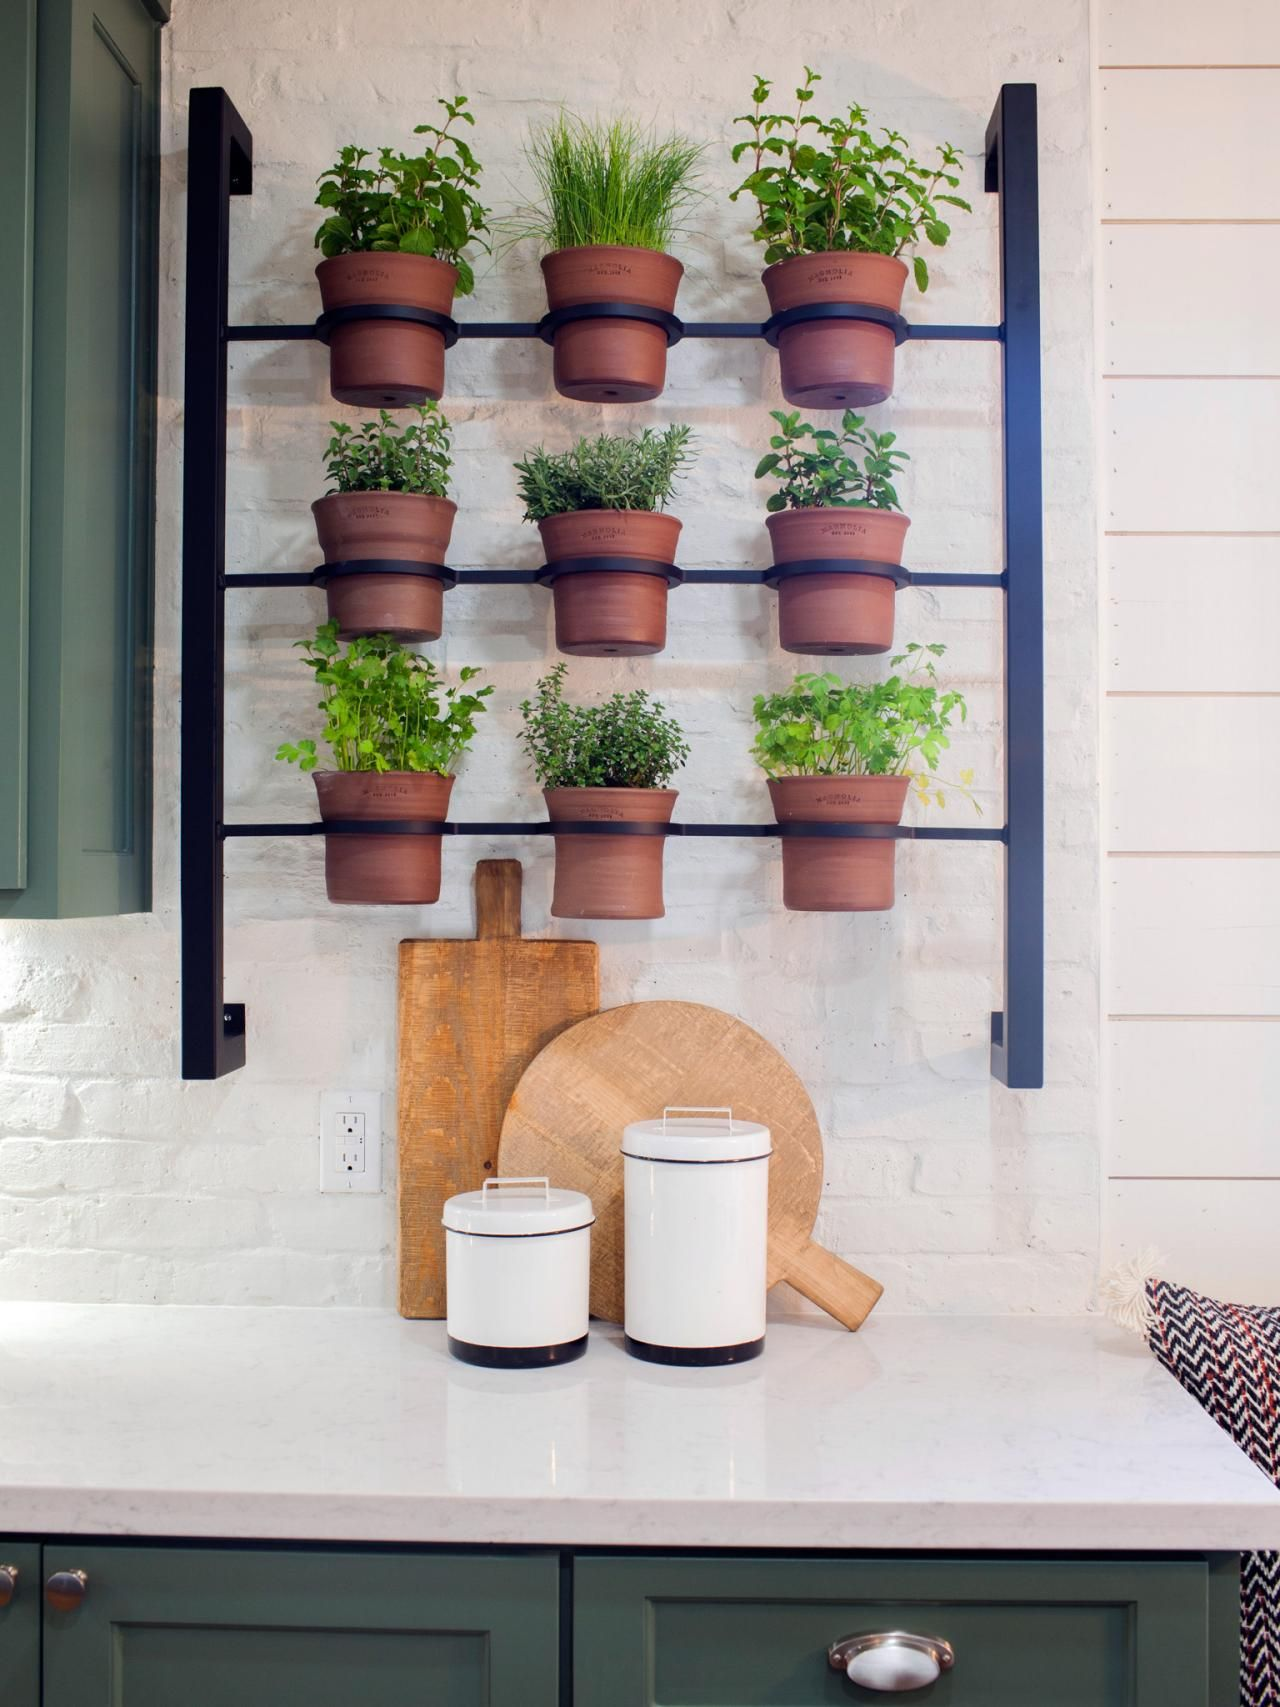 Beautiful Fixer Upper Star Joanna Gaines Knows How To Add Life To A Home With Clever  Container Gardens. Get Her Tips On HGTV.com.